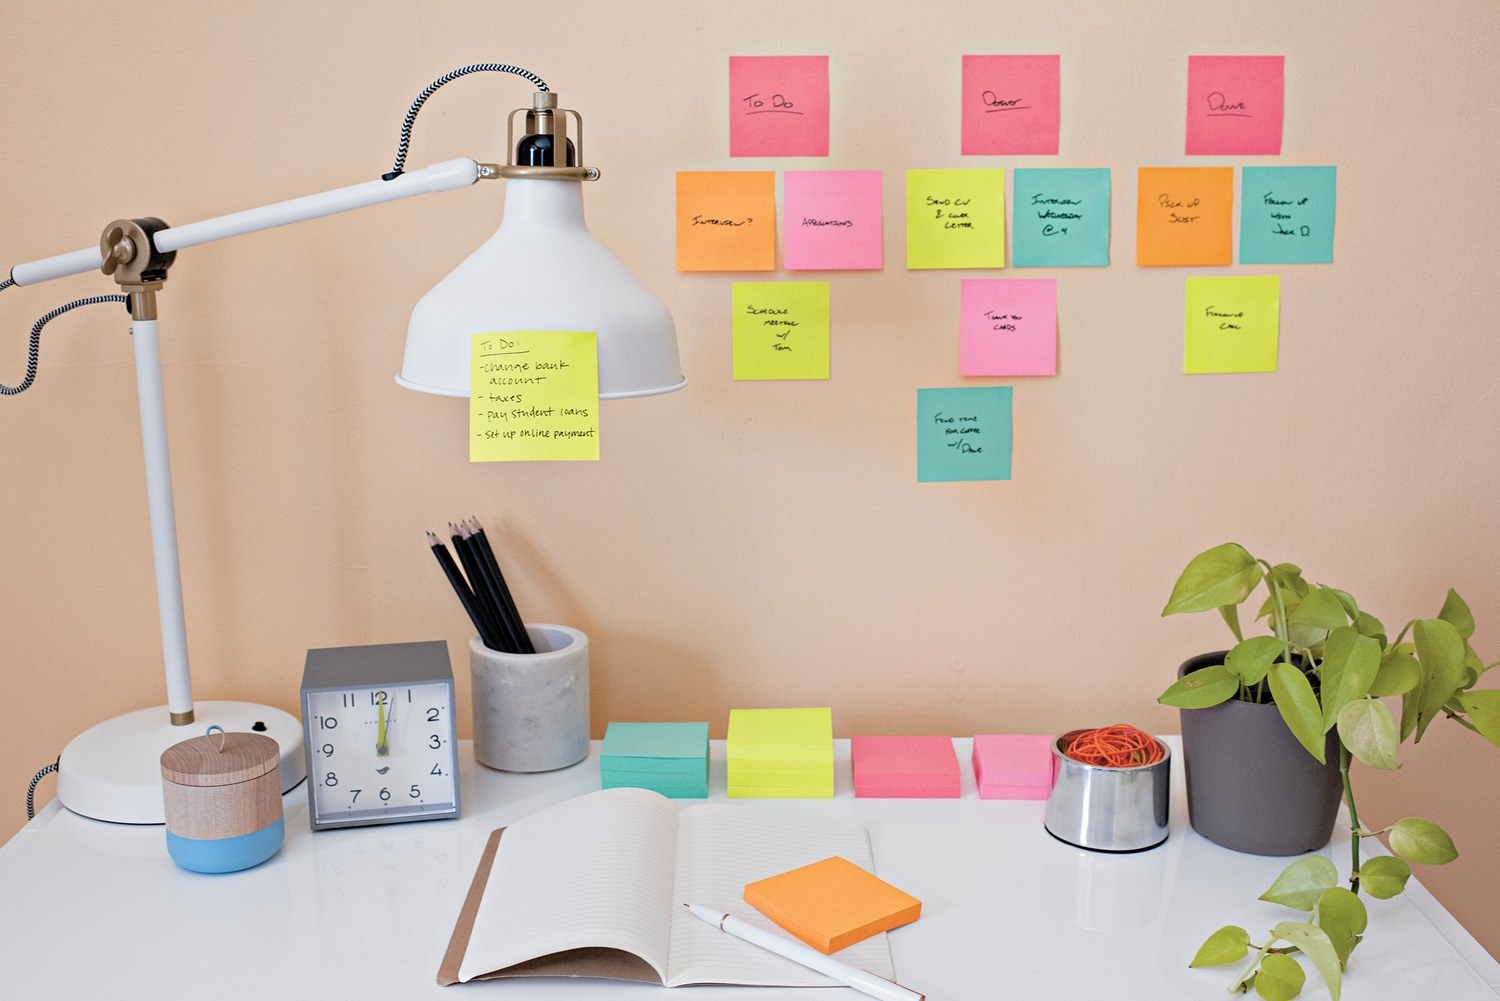 A wall with different bright-colored sticky notes on it